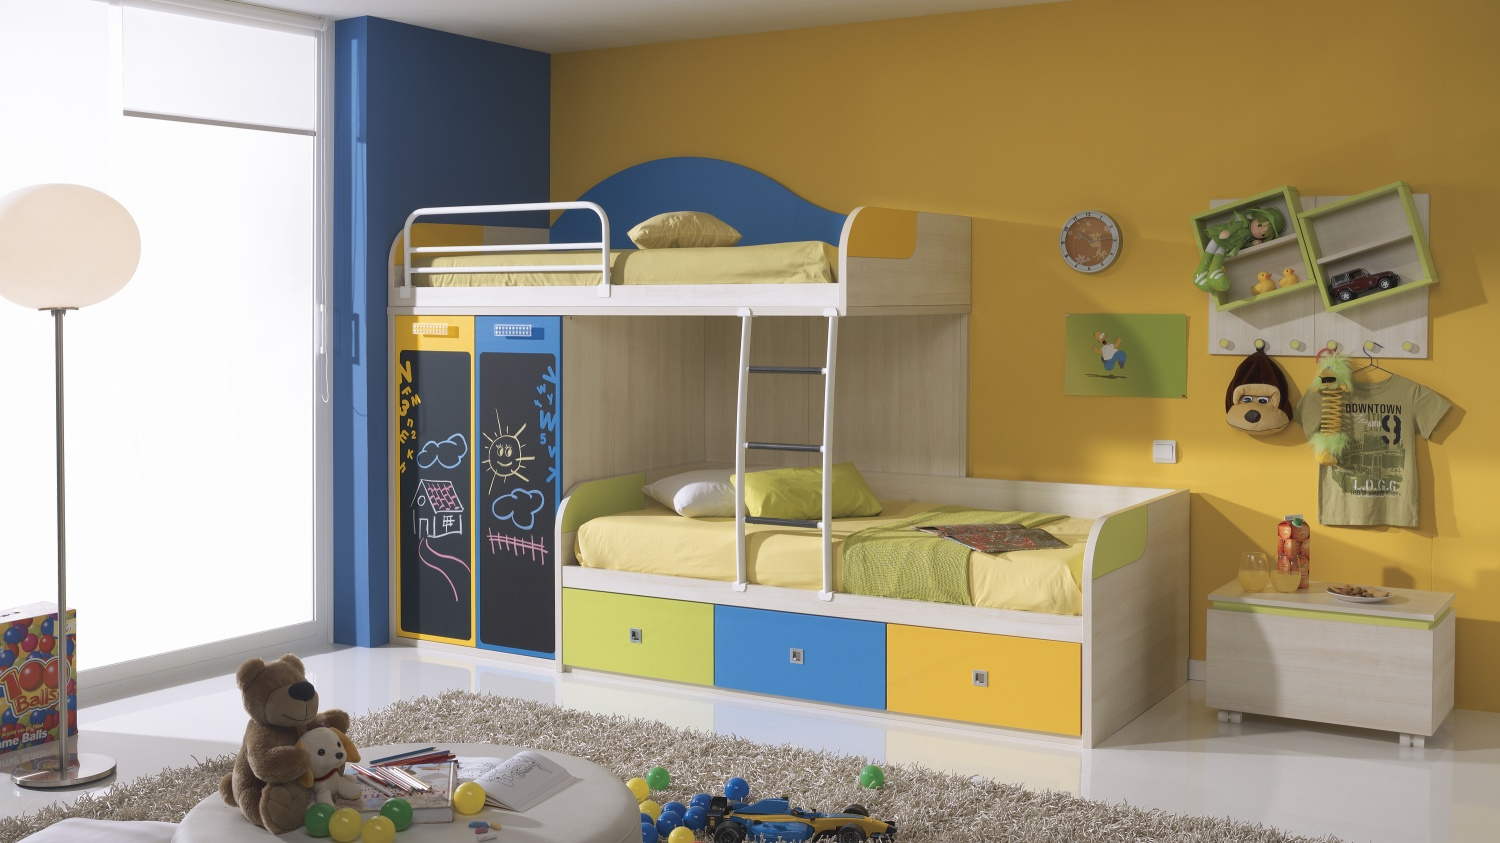 2 4 bunk bed plans bed plans diy blueprints. Black Bedroom Furniture Sets. Home Design Ideas